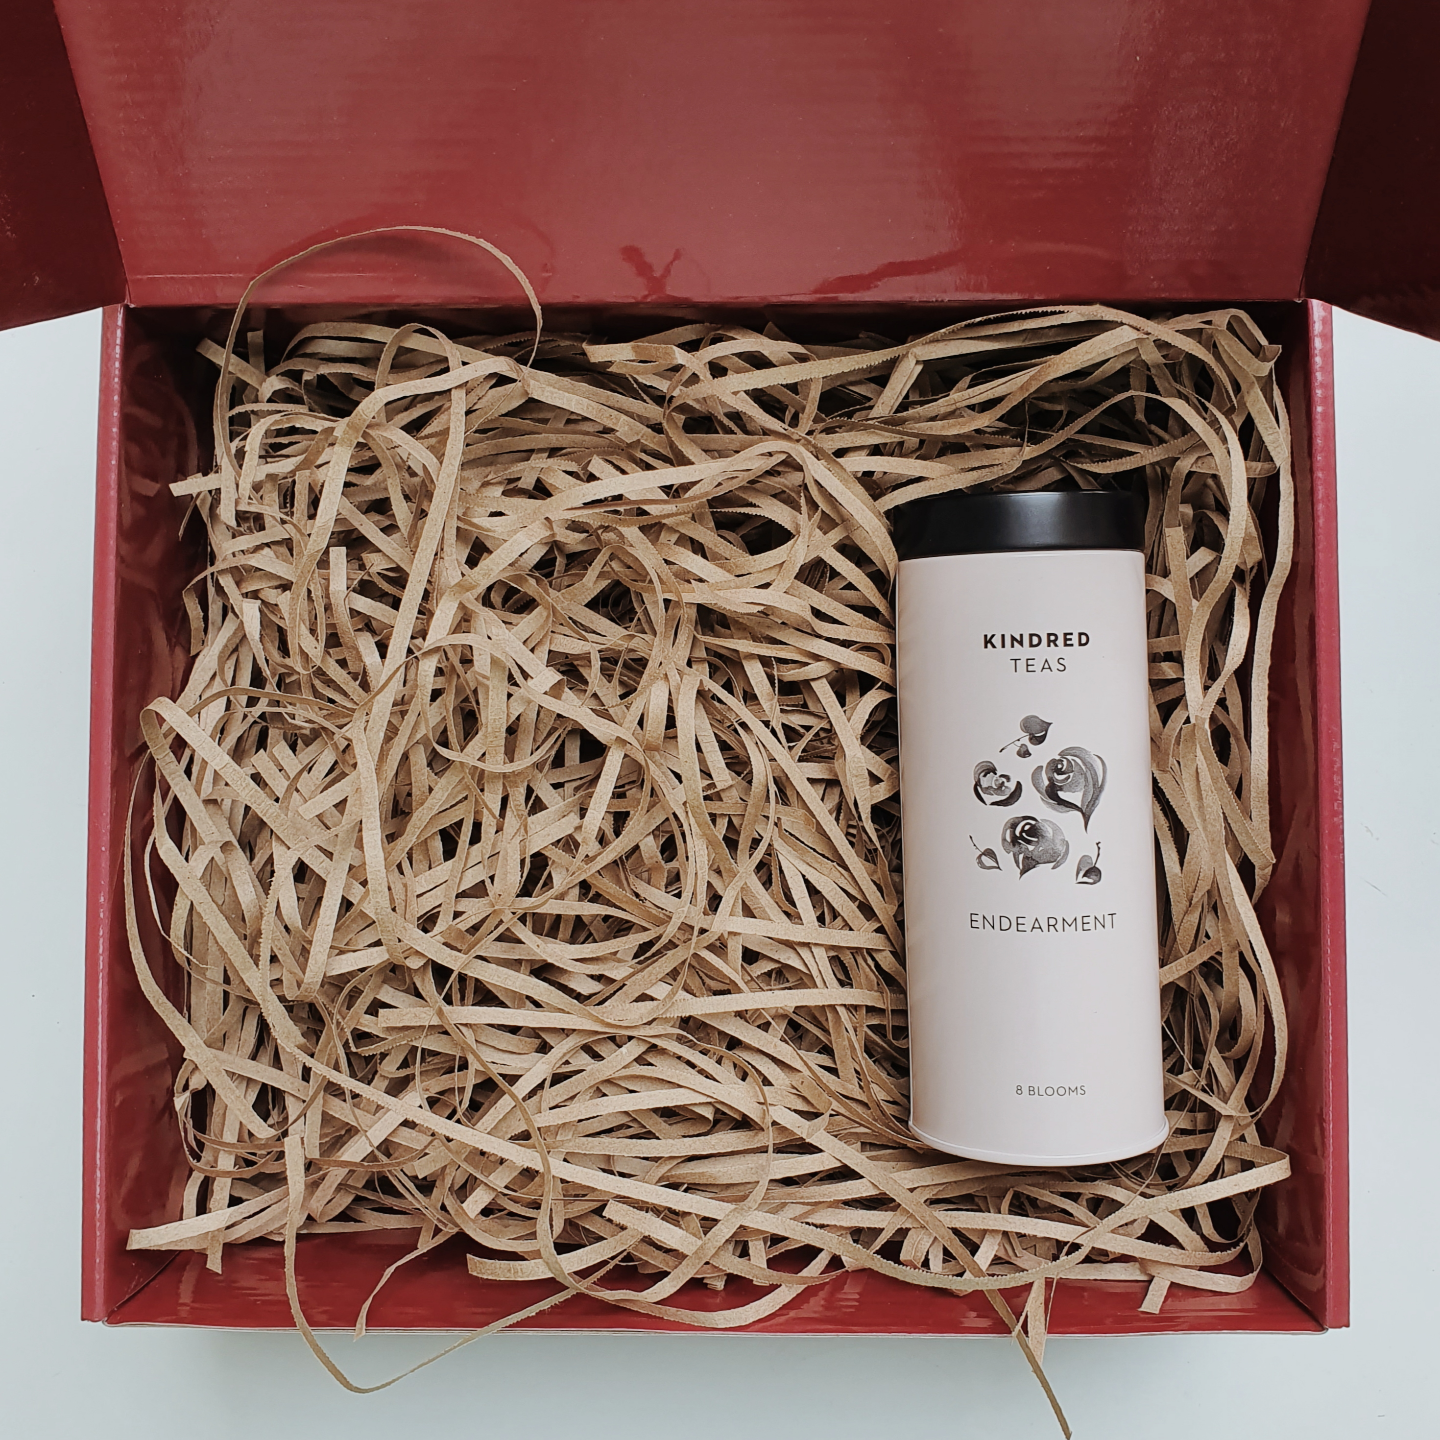 Red gift box filled with brown shredded paper. On the right is a pink cylindrical tin can with black lid. The tin can is labeled Kindred Teas on top, with flowers in the middle and the words Endearment and 8 blooms below.